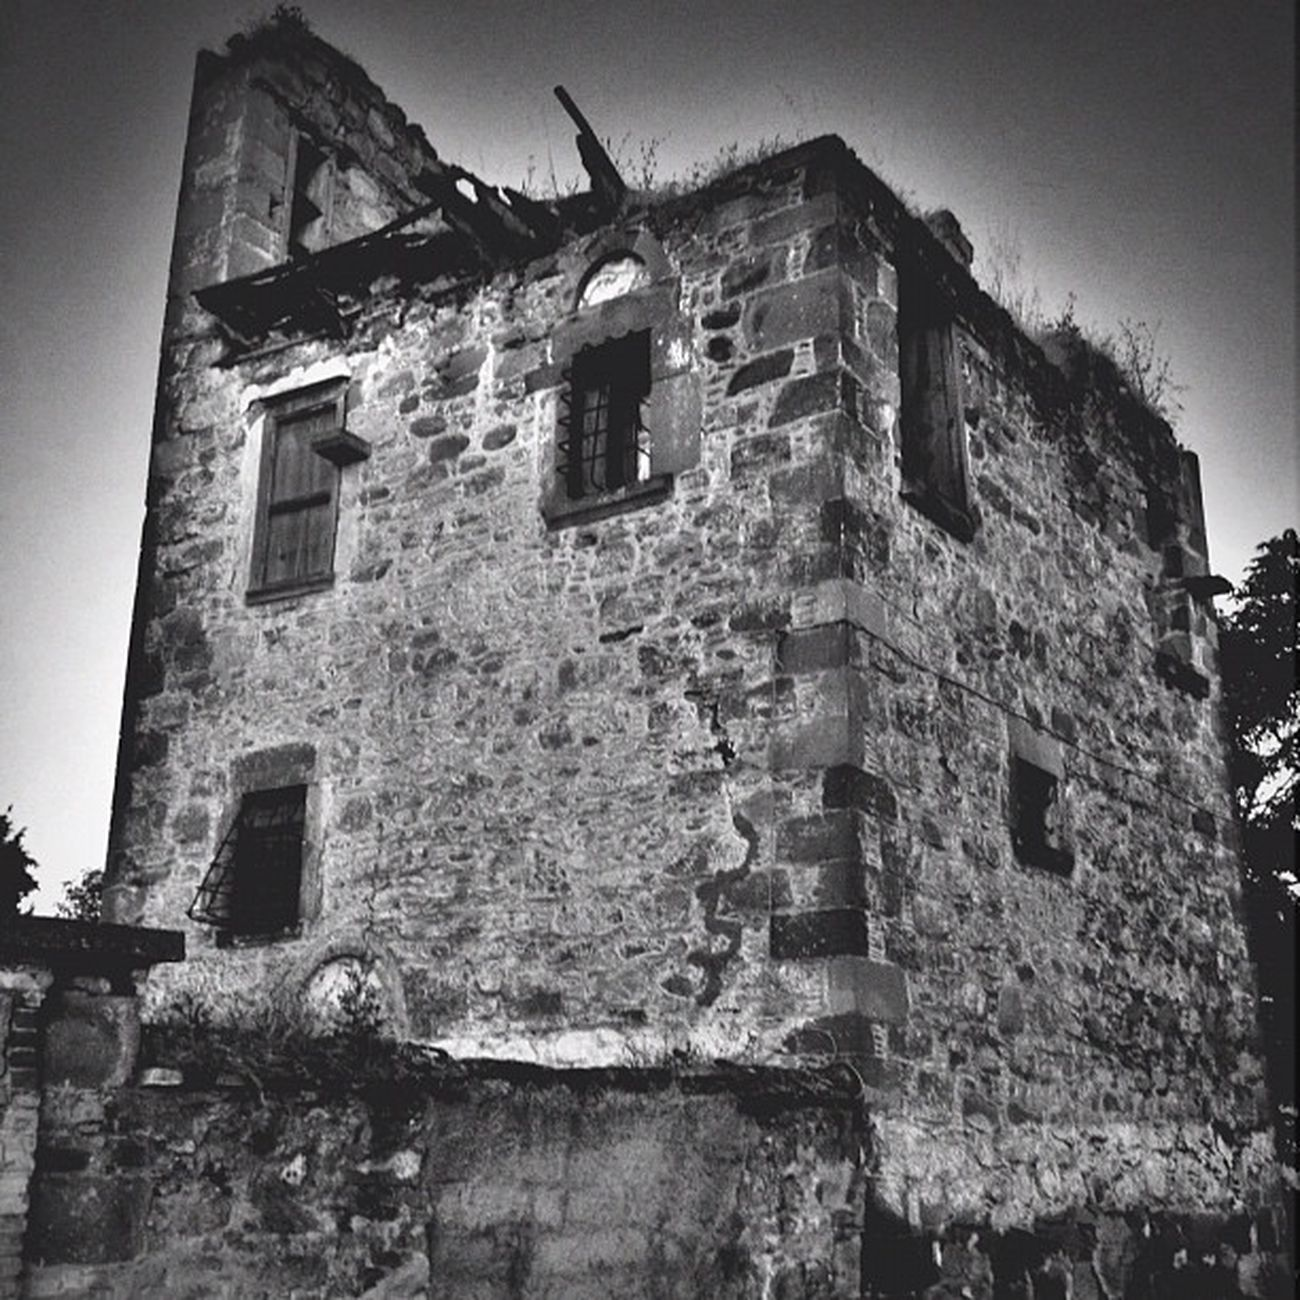 Ruins IPhoneography Greece Mono Photooftheday Igers Photoday Editoftheday Ubiquography Mytilini Instalovers_gr